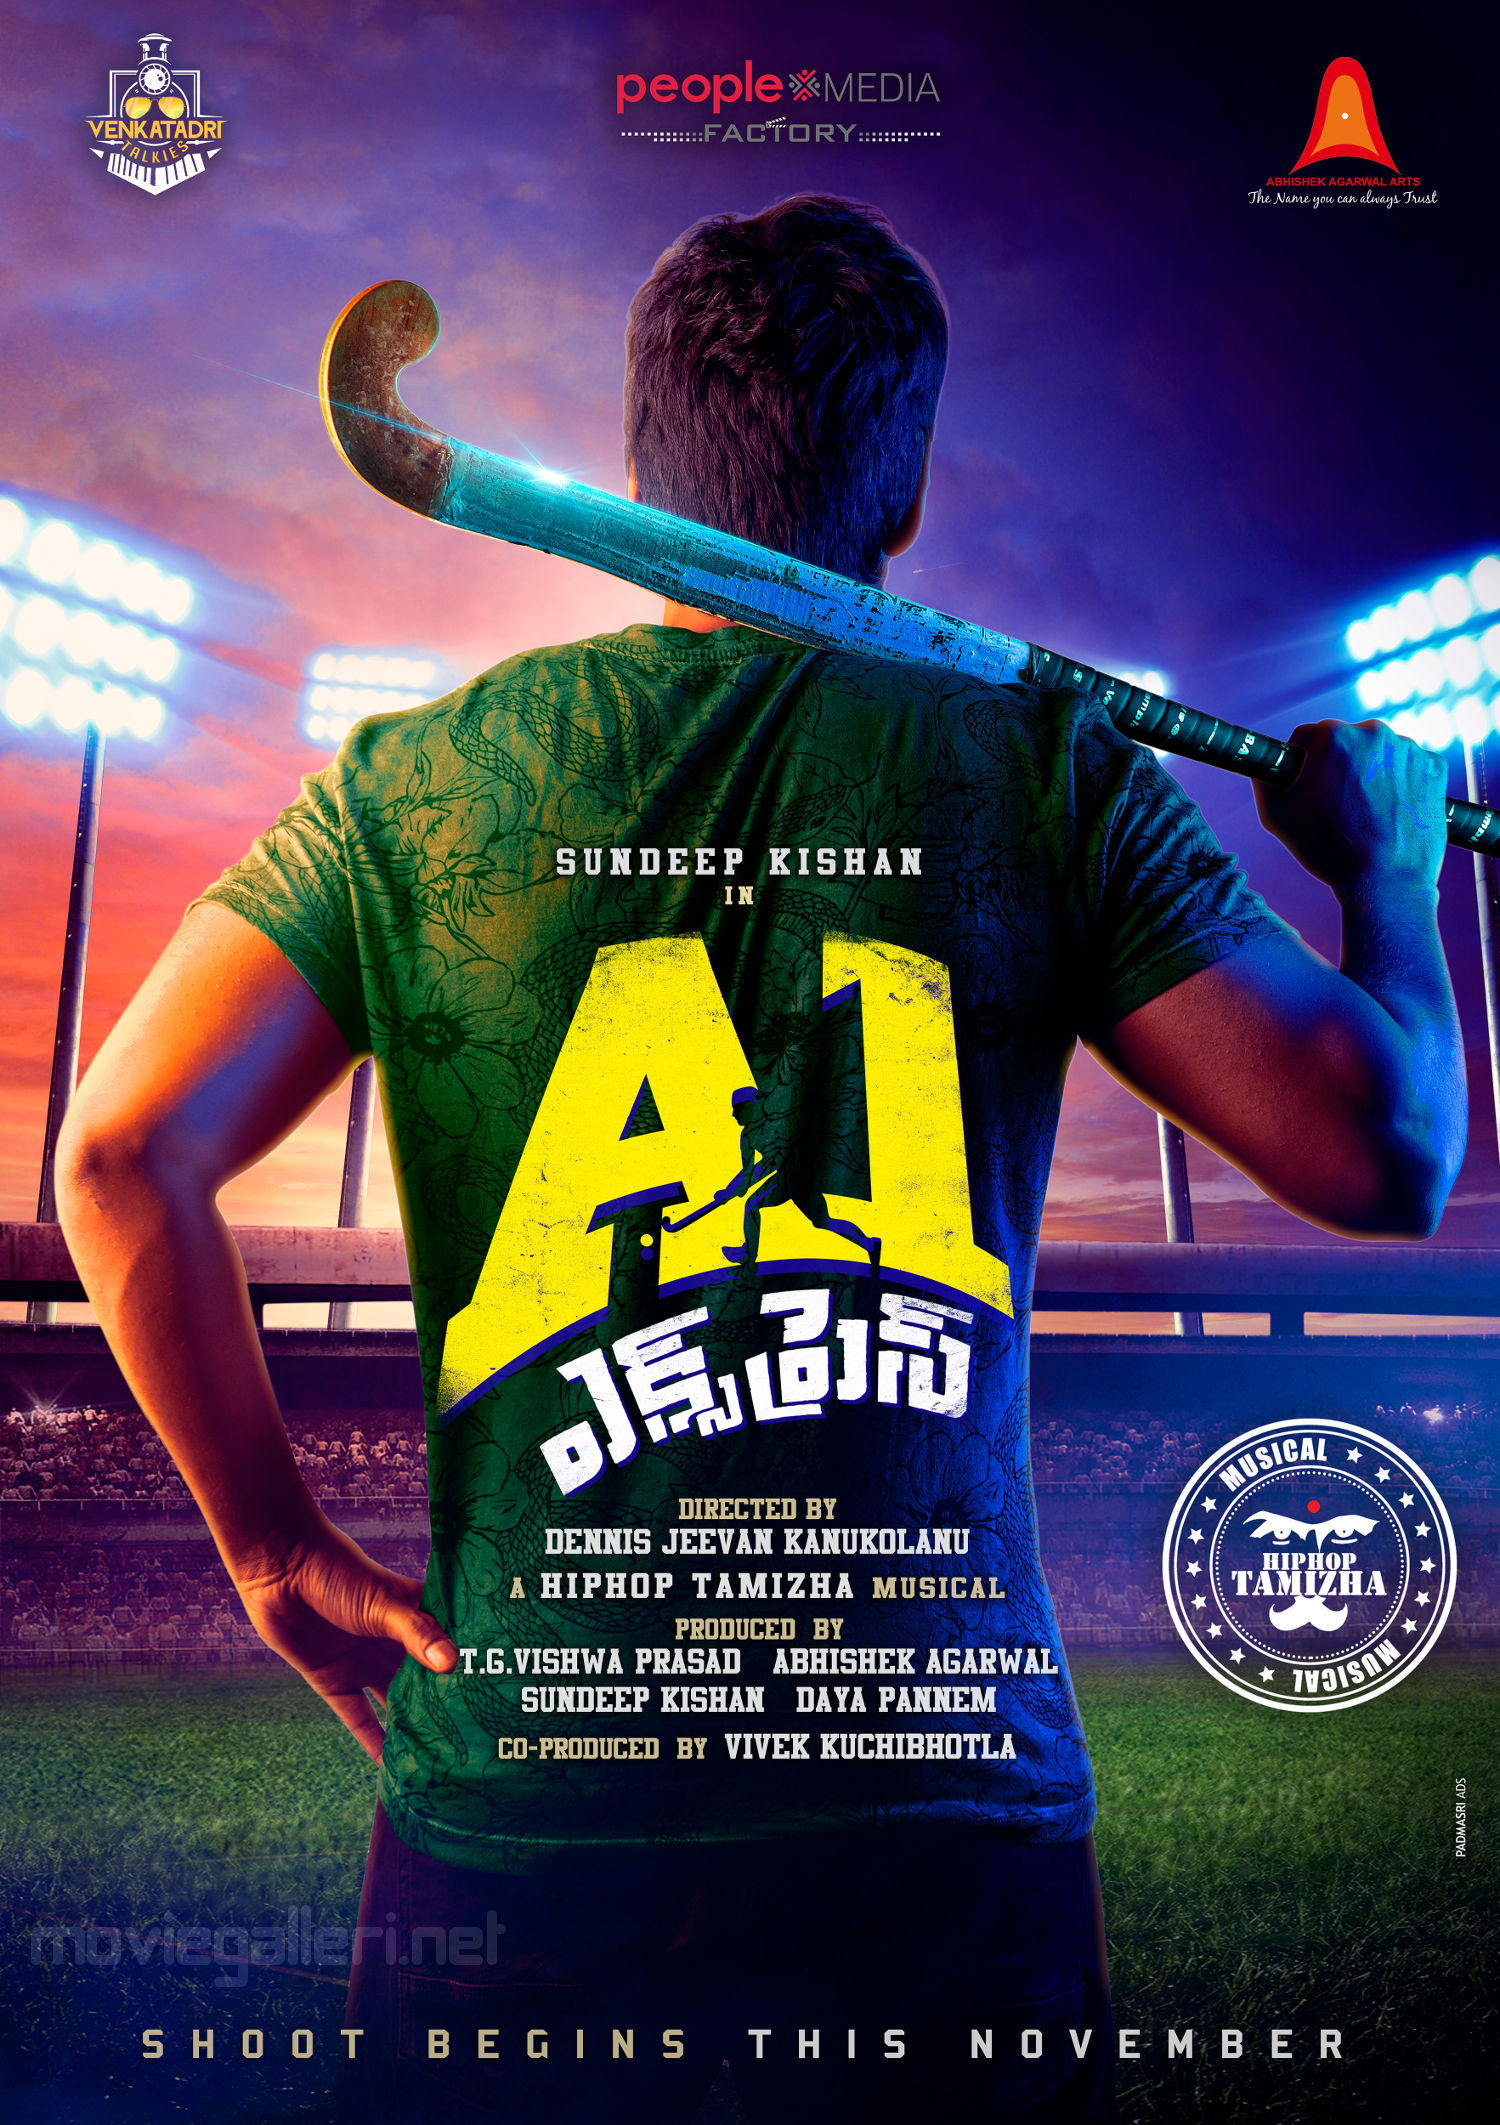 Sundeep Kishan A1 Express Movie Logo Poster HD